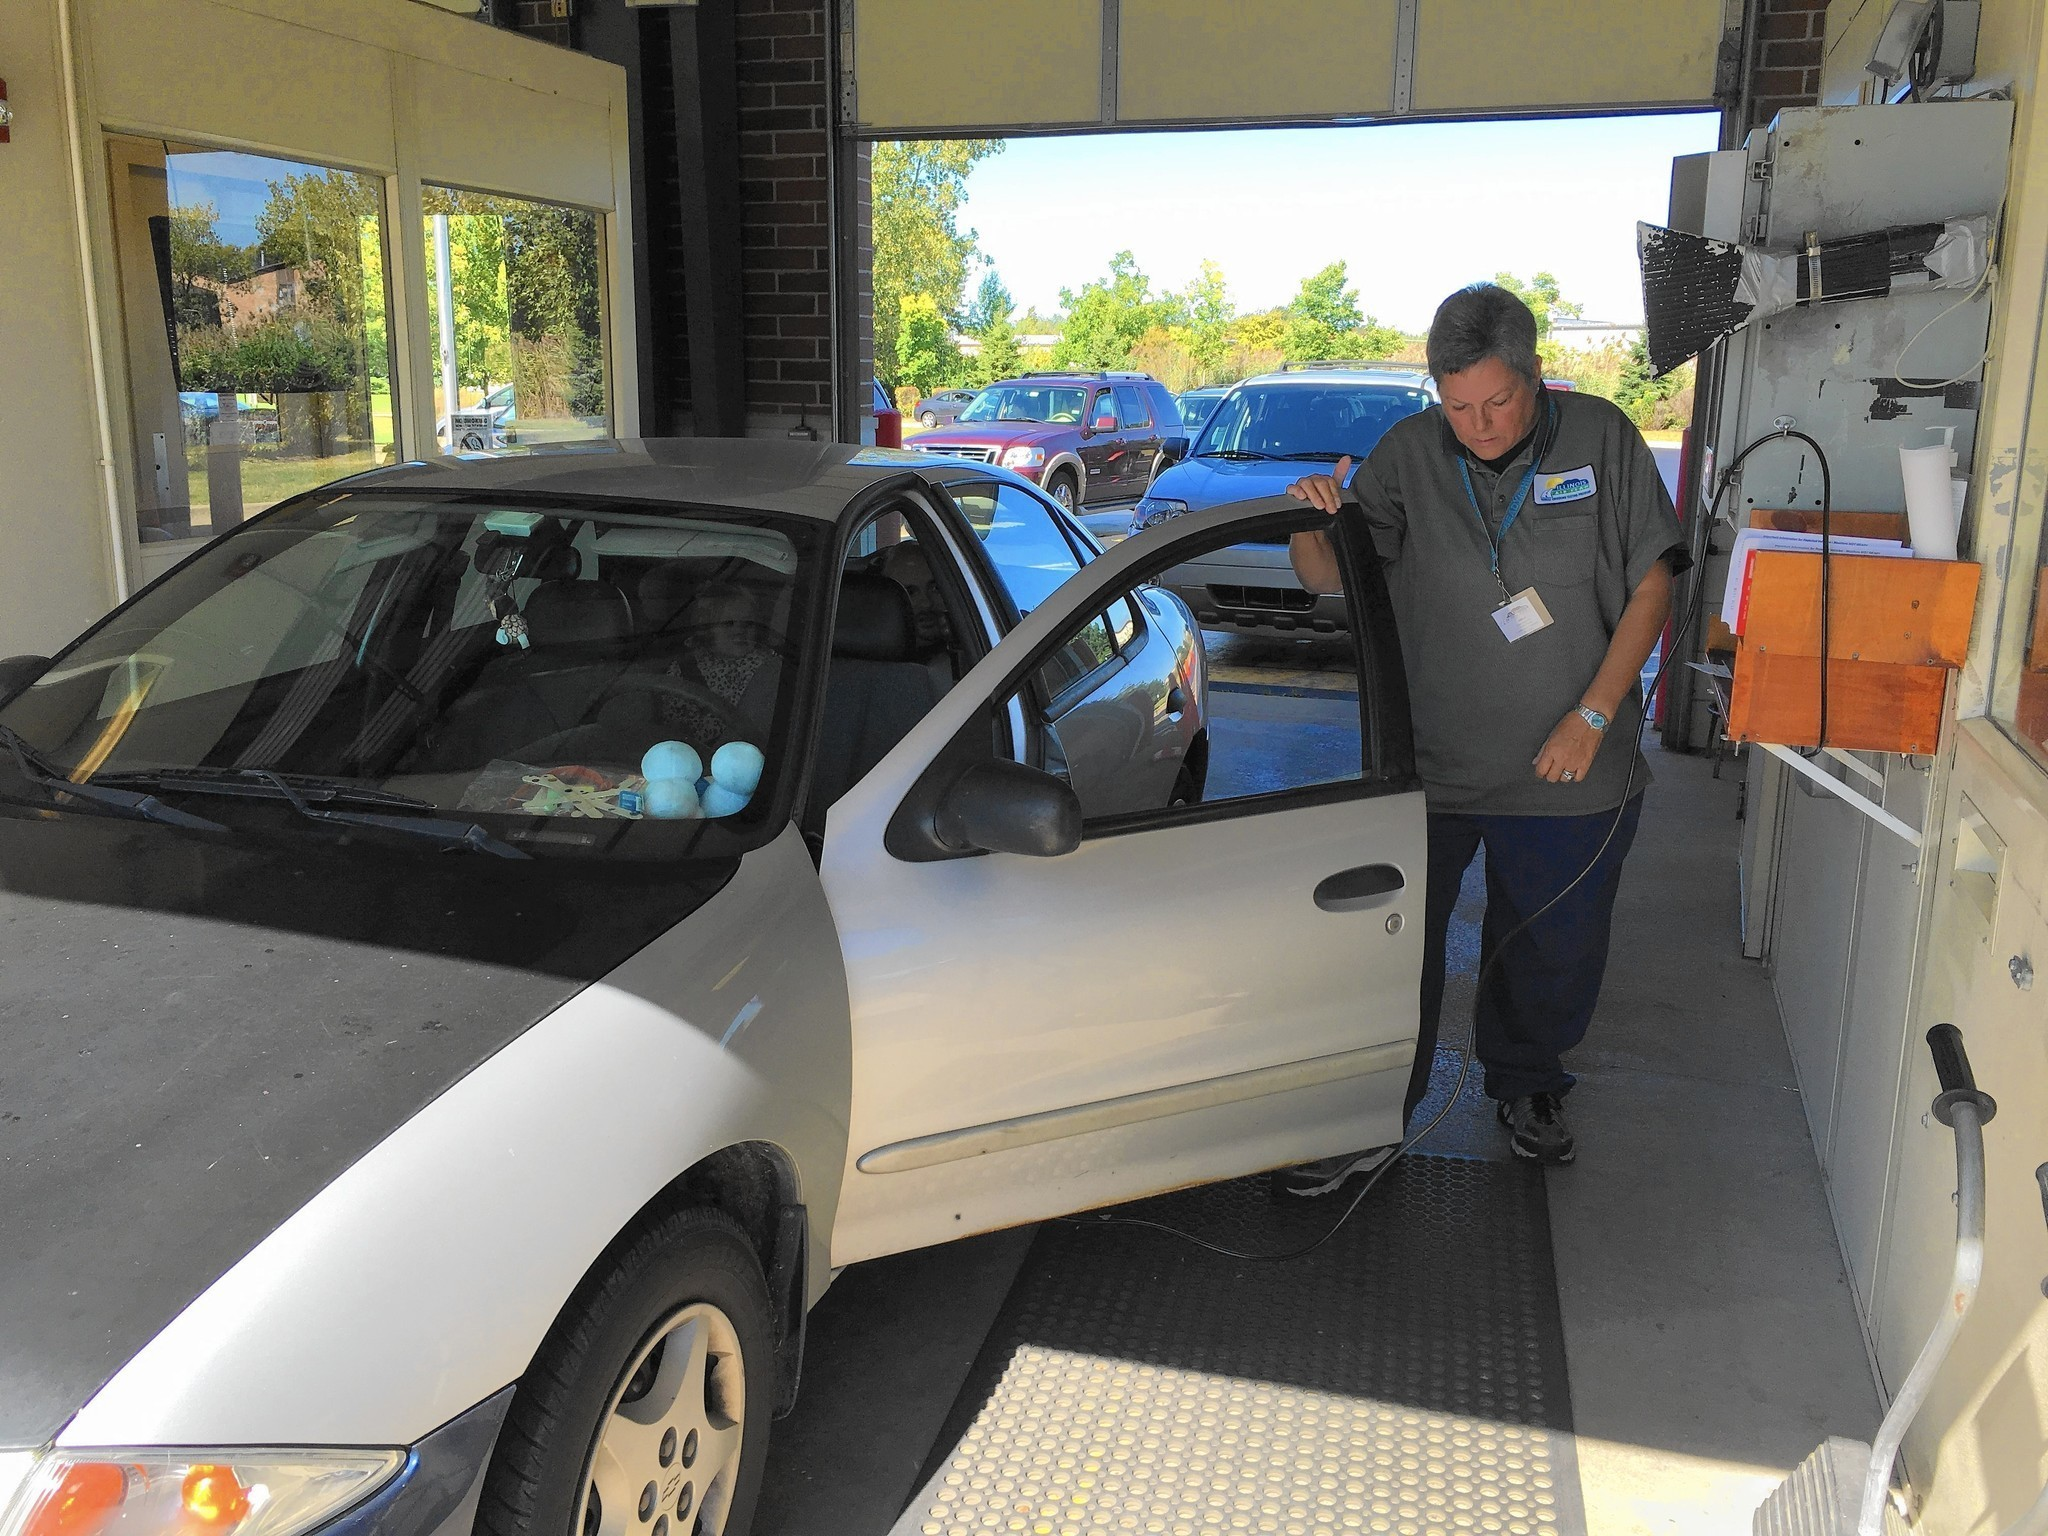 Closing Tinley Park Vehicle Emission Testing Facility Will Hurt Drivers Daily Southtown